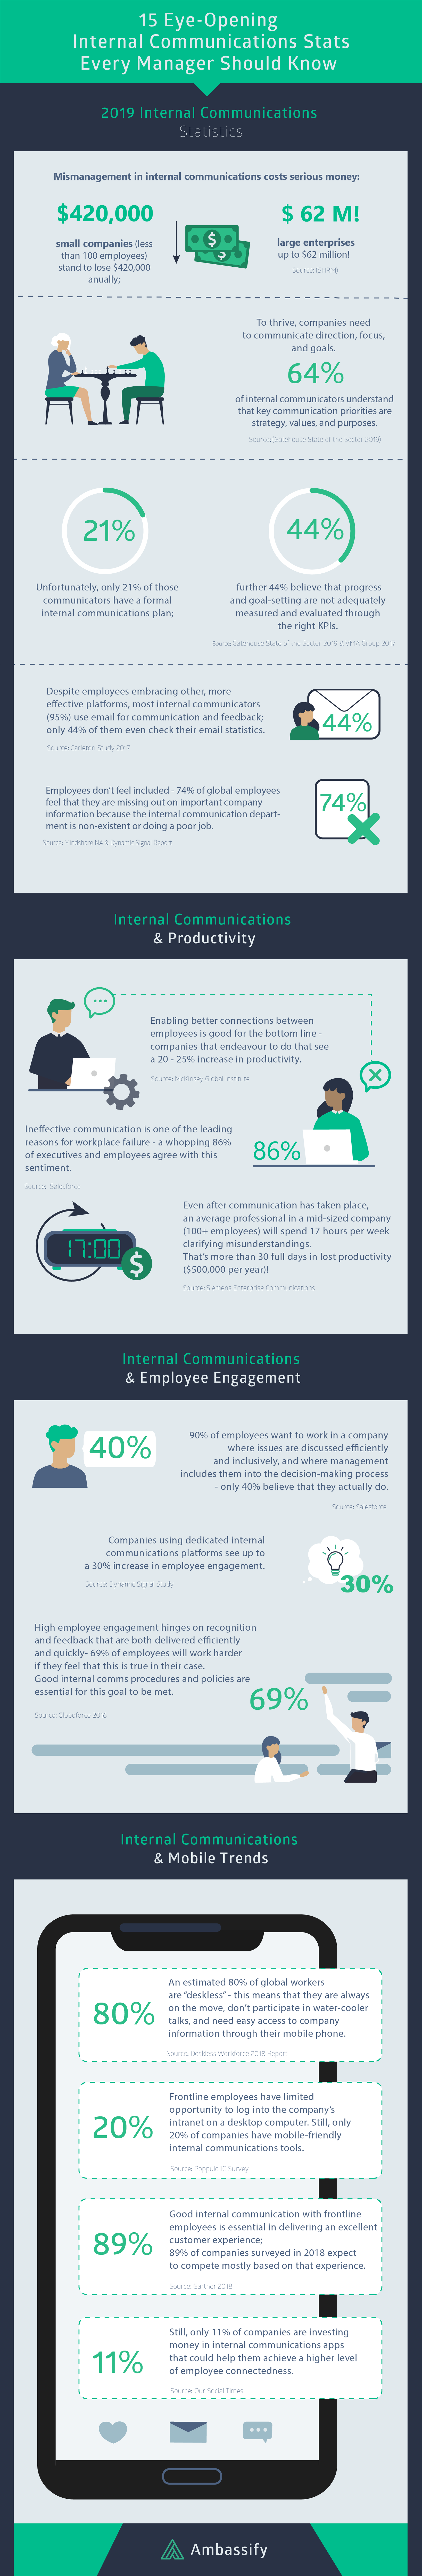 Internal Communications Infographic-02